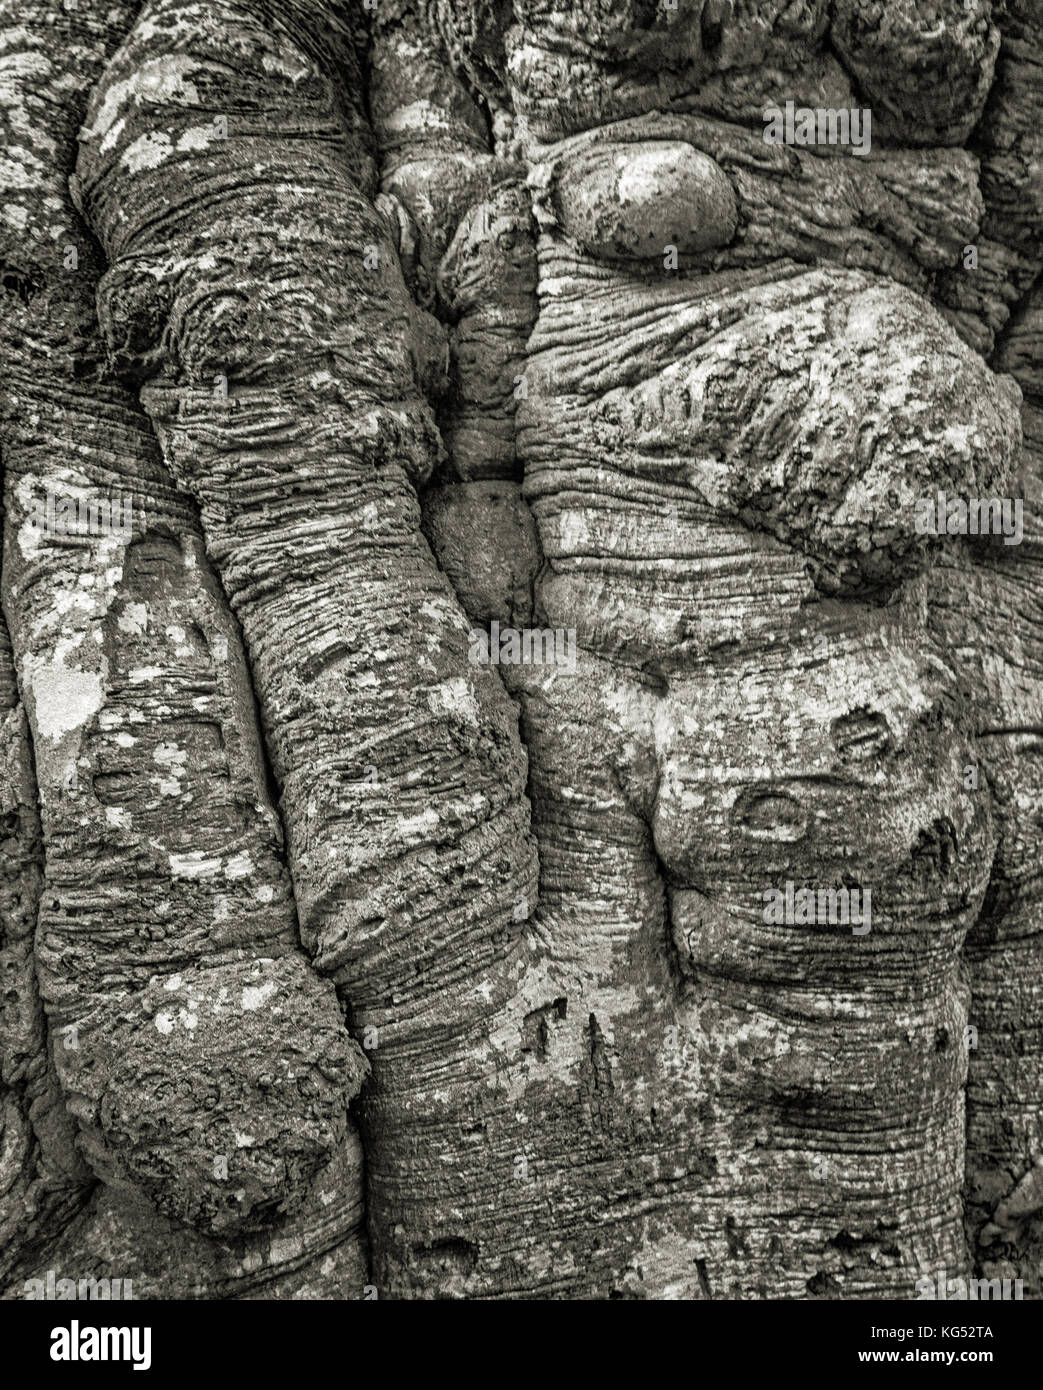 Detail of the trunk of an ancient beech tree Fagus sylvatica in the New Forest in Hampshire UK - Stock Image